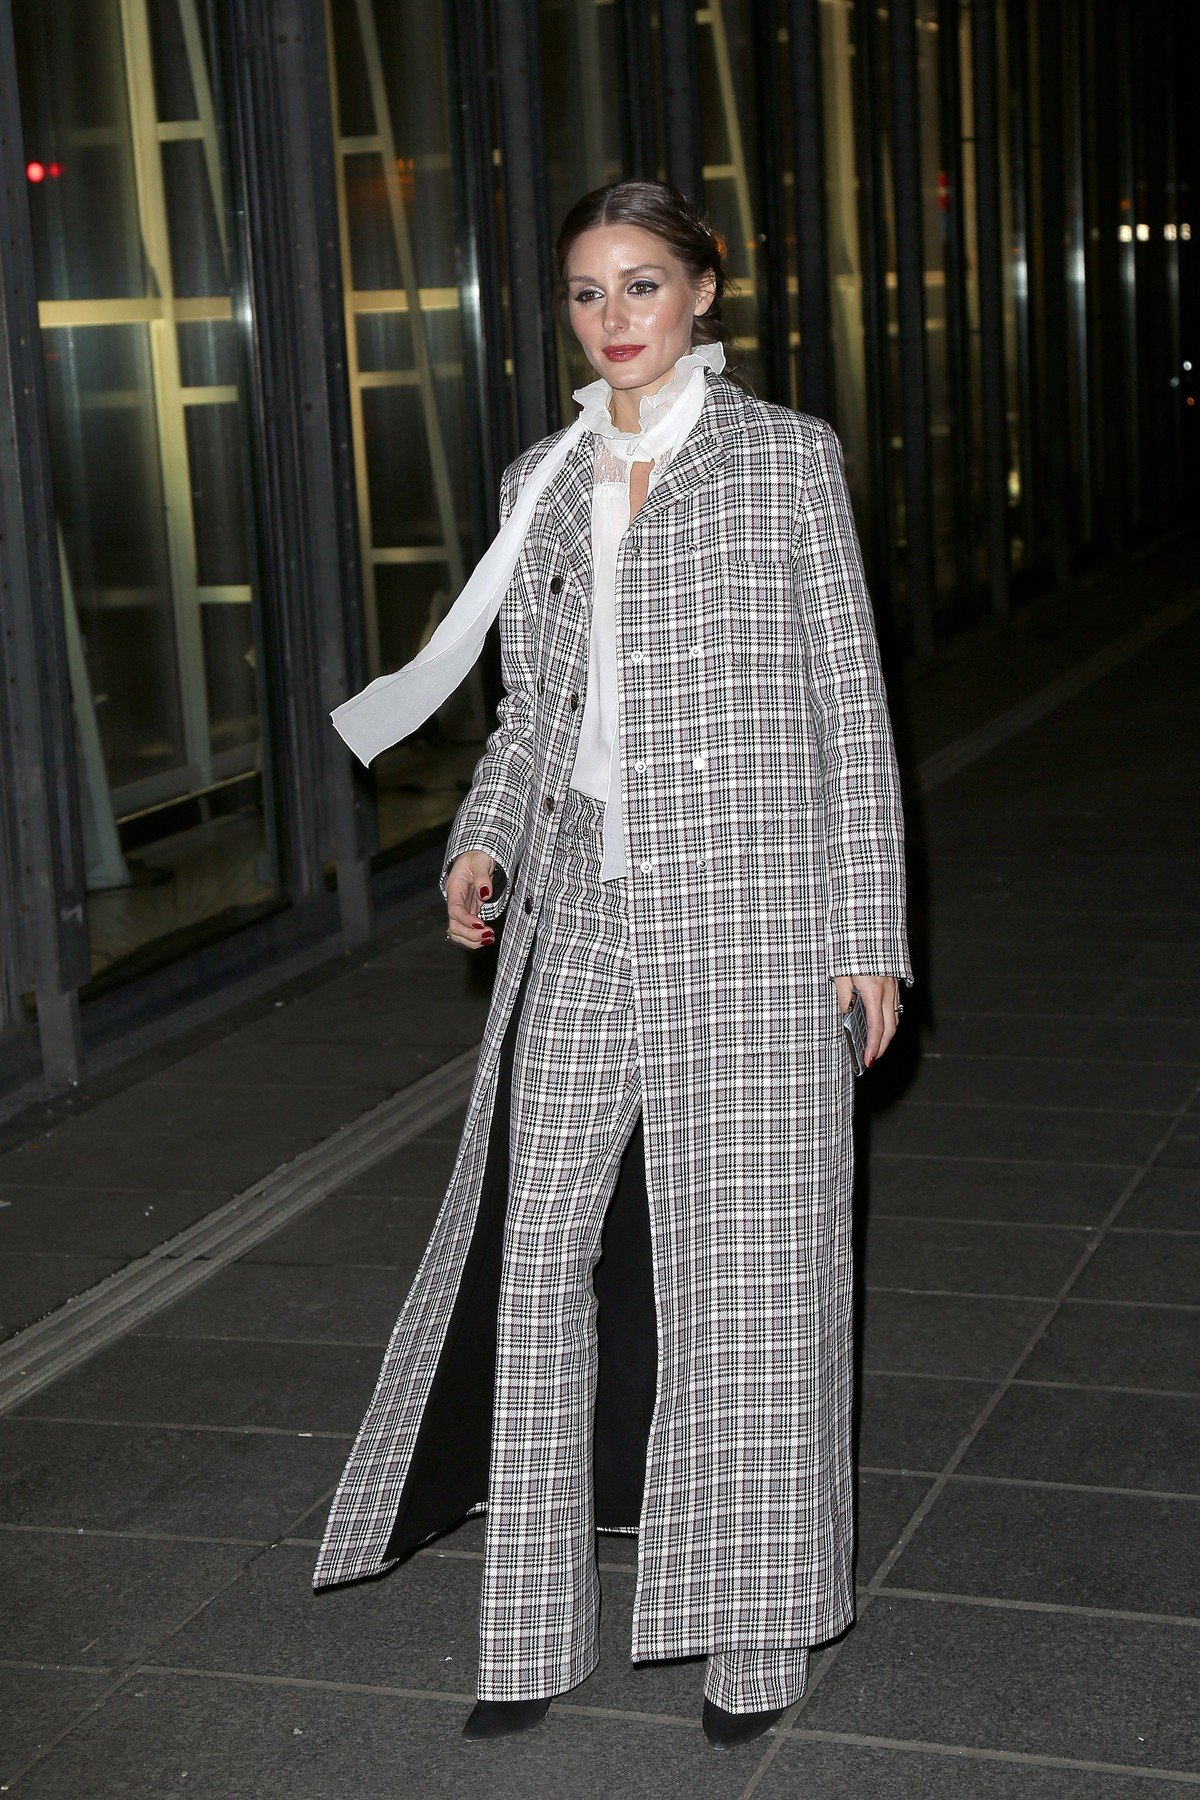 Olivia Palermo - Outside Arrivals at Antonio Grimaldi Fashion Show Couture Spring/Summer 2019 during the Paris Fashion Week on January 21, 2019.//HAEDRICHJM_034JMH/1901220849/Credit:Jean-Marc HAEDRICH/SIPA/1901220855, Image: 409205077, License: Rights-managed, Restrictions: , Model Release: no, Credit line: Profimedia, TEMP Sipa Press